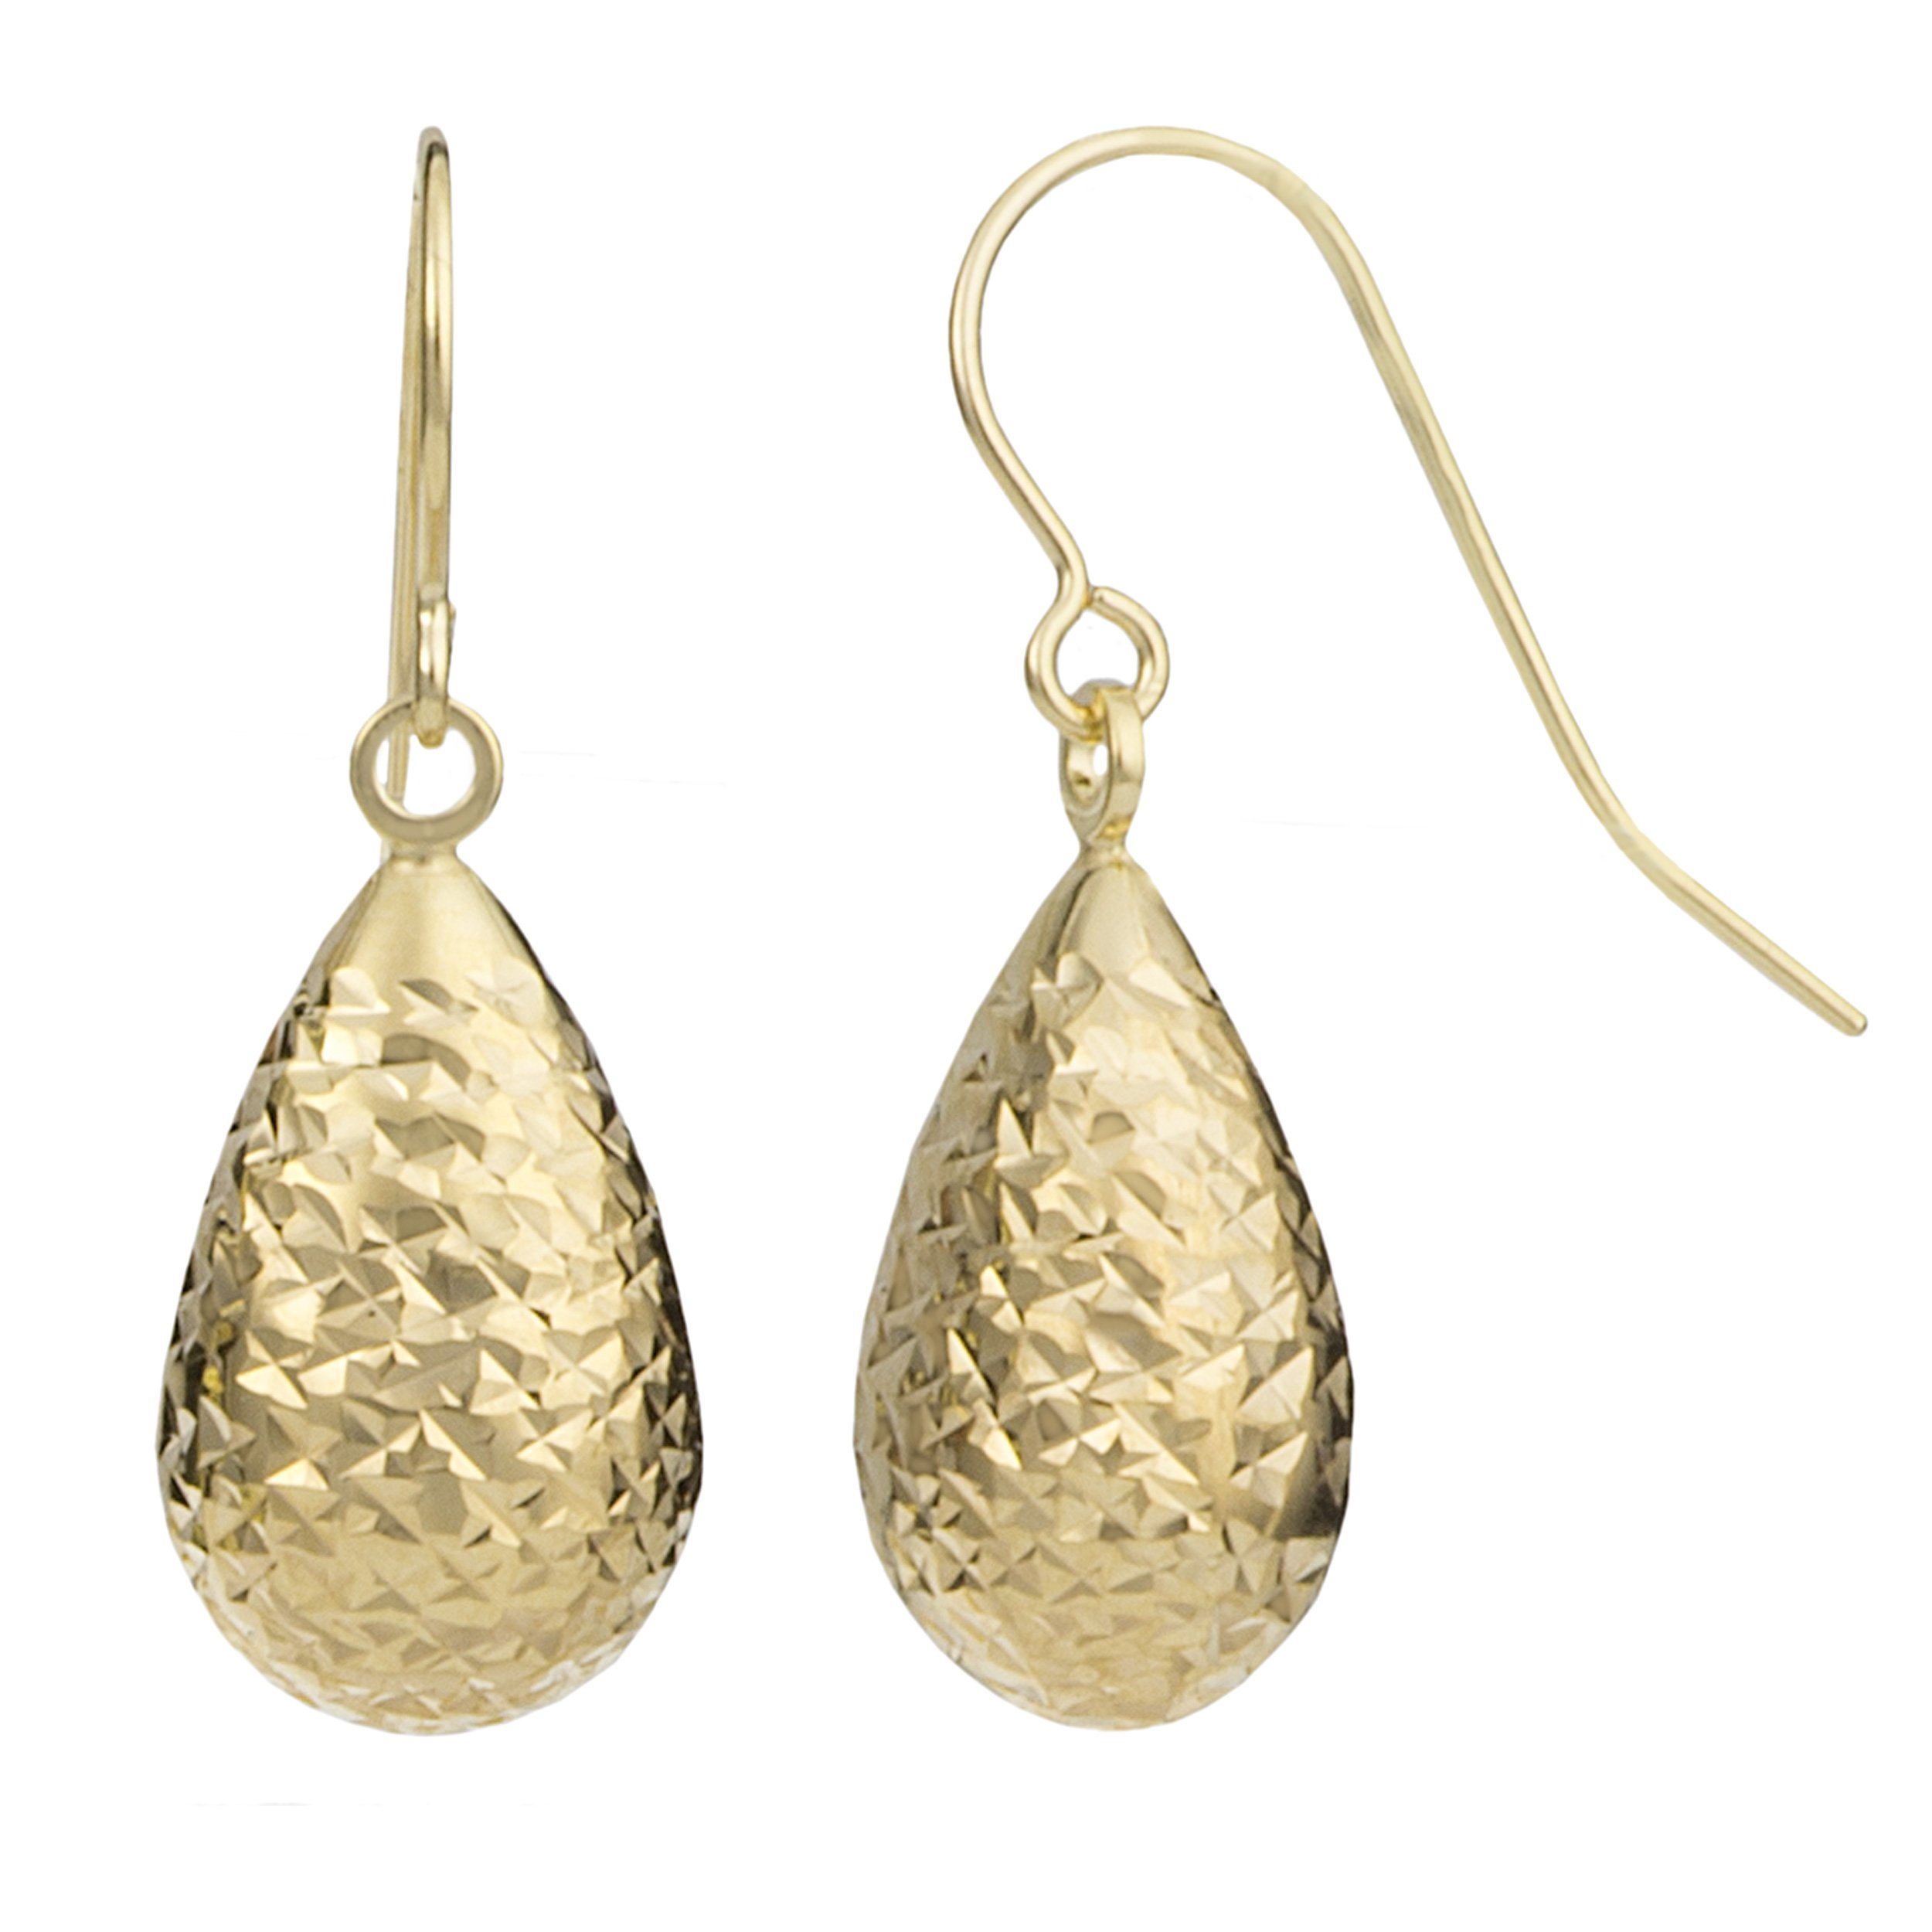 14k Yellow Gold Diamond-cut Teardrop Earrings